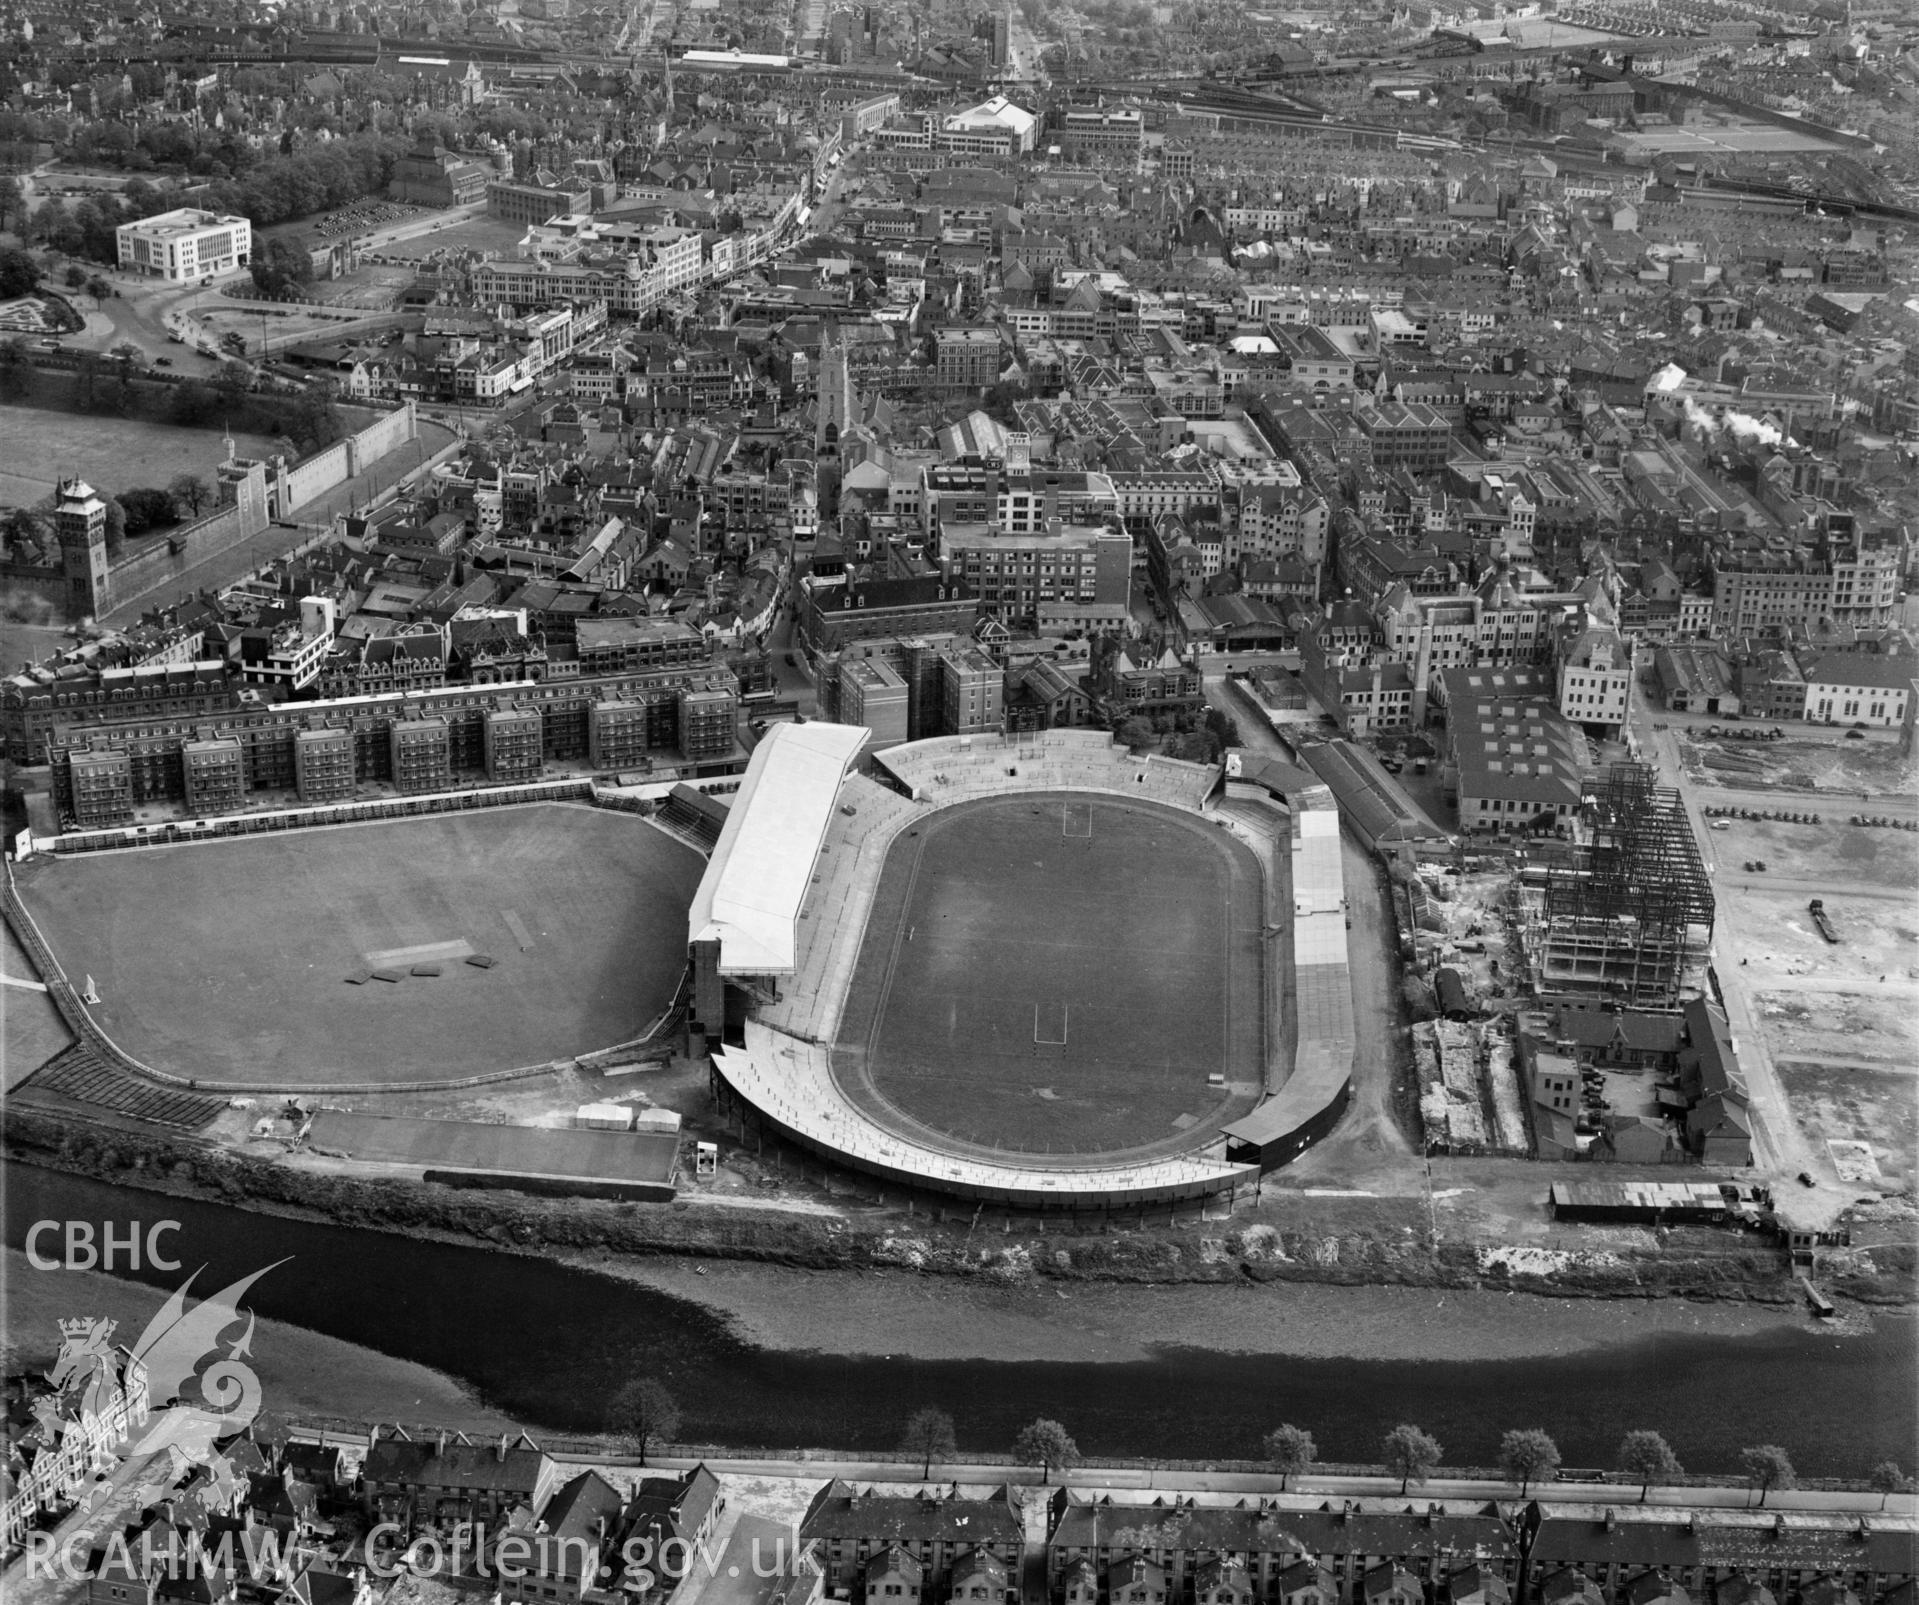 View of Cardiff showing the Arms Park rugby & cricket grounds